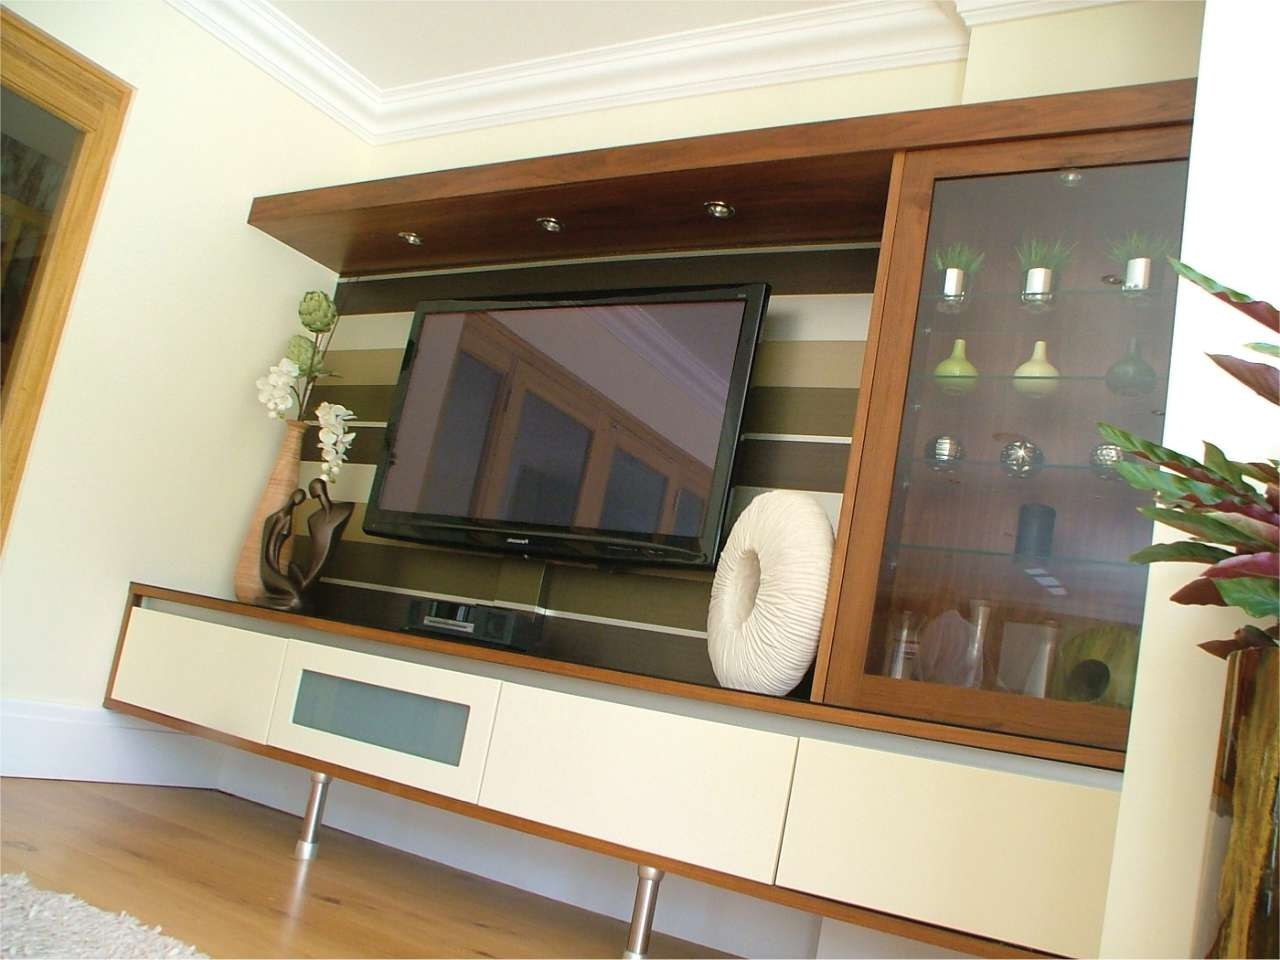 Bespoke Tv Cabinet | Choice Interiors For Bespoke Tv Cabinets (View 14 of 20)